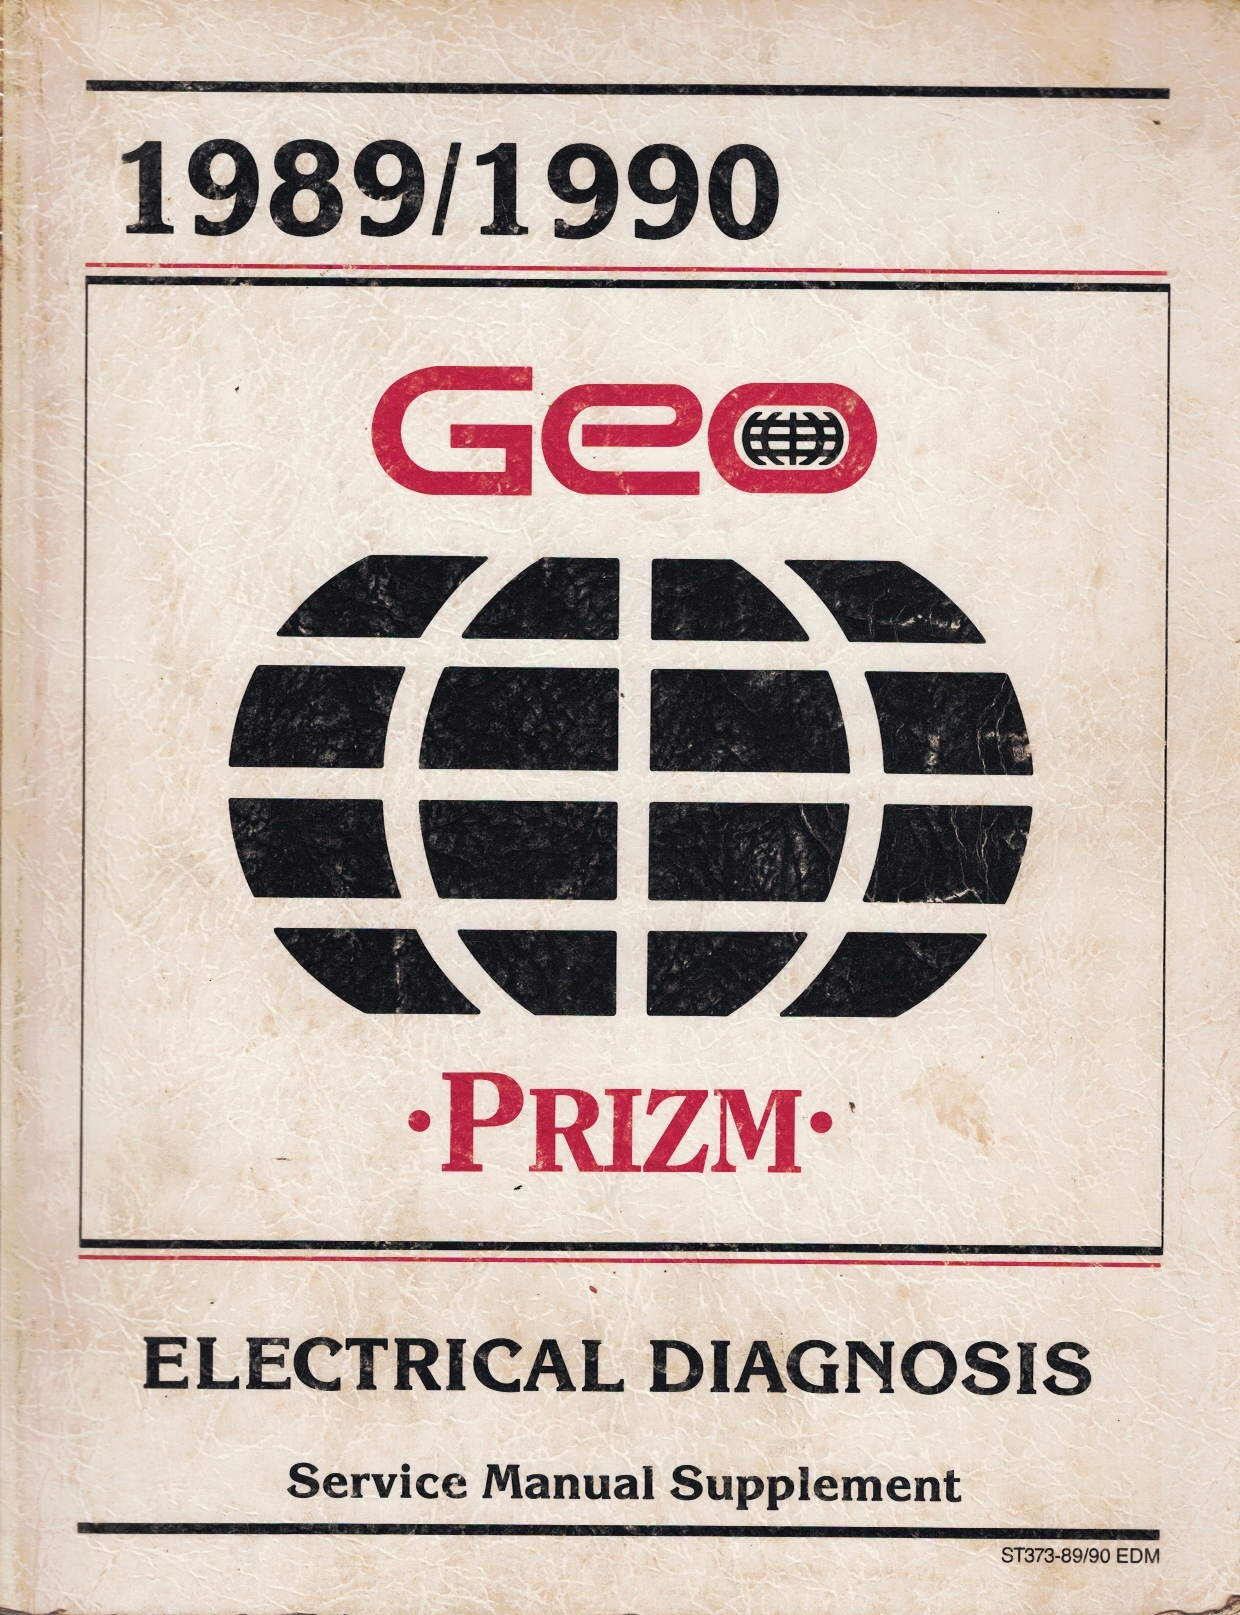 """Image for 1989 / 1990 Geo Prizm Service Manual - 2 Volume Set; includes the """"Service Manual"""", and the """"Electrical Diagnosis Service Manual Supplement"""""""